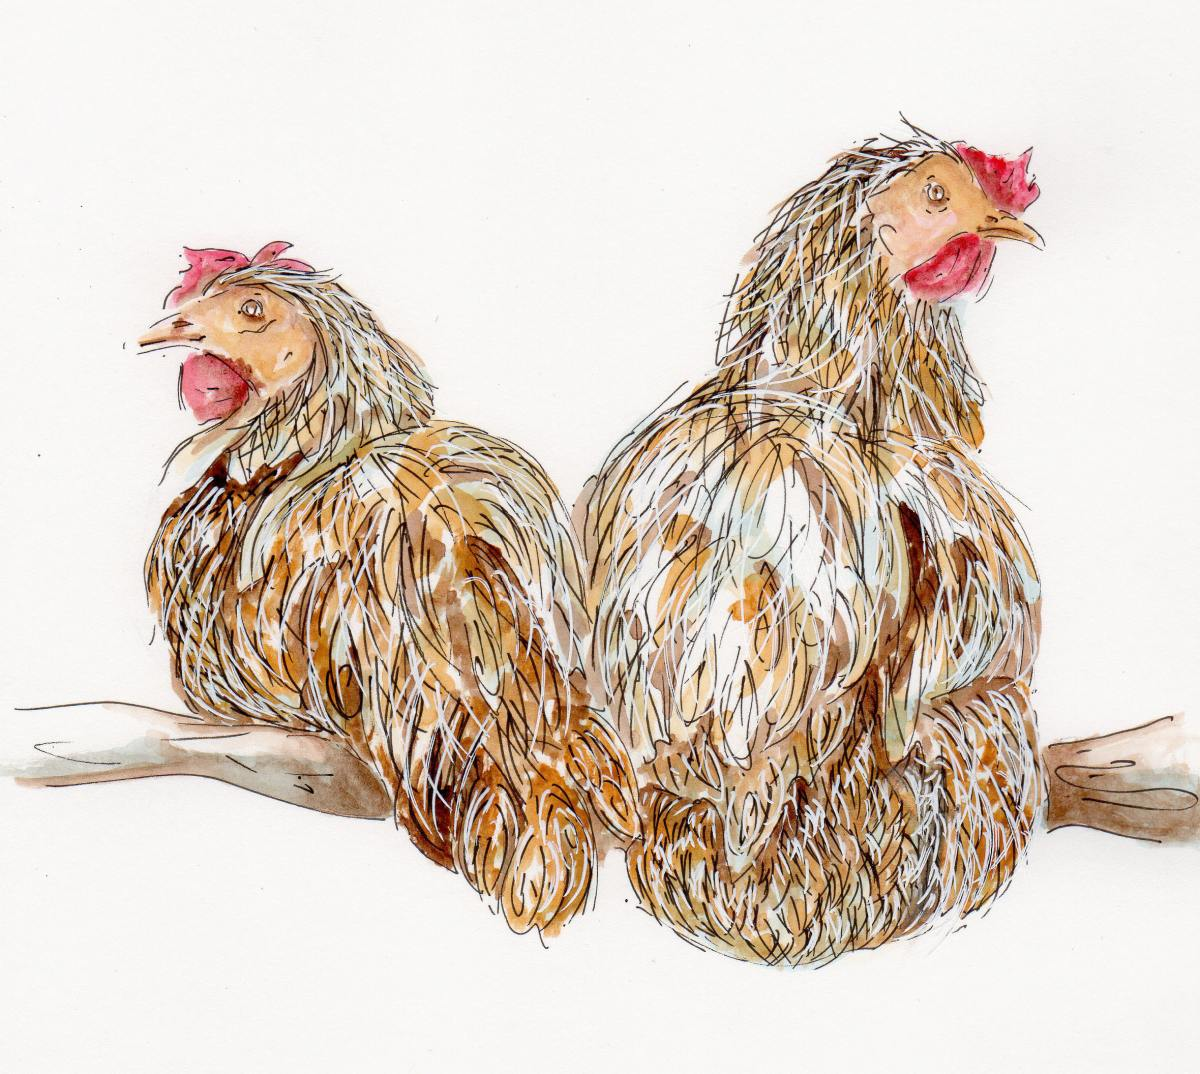 #WorldWatercolorGroup - Watercolor illustration by Patricia Mellett Brown - chickens on branch - #doodlewash